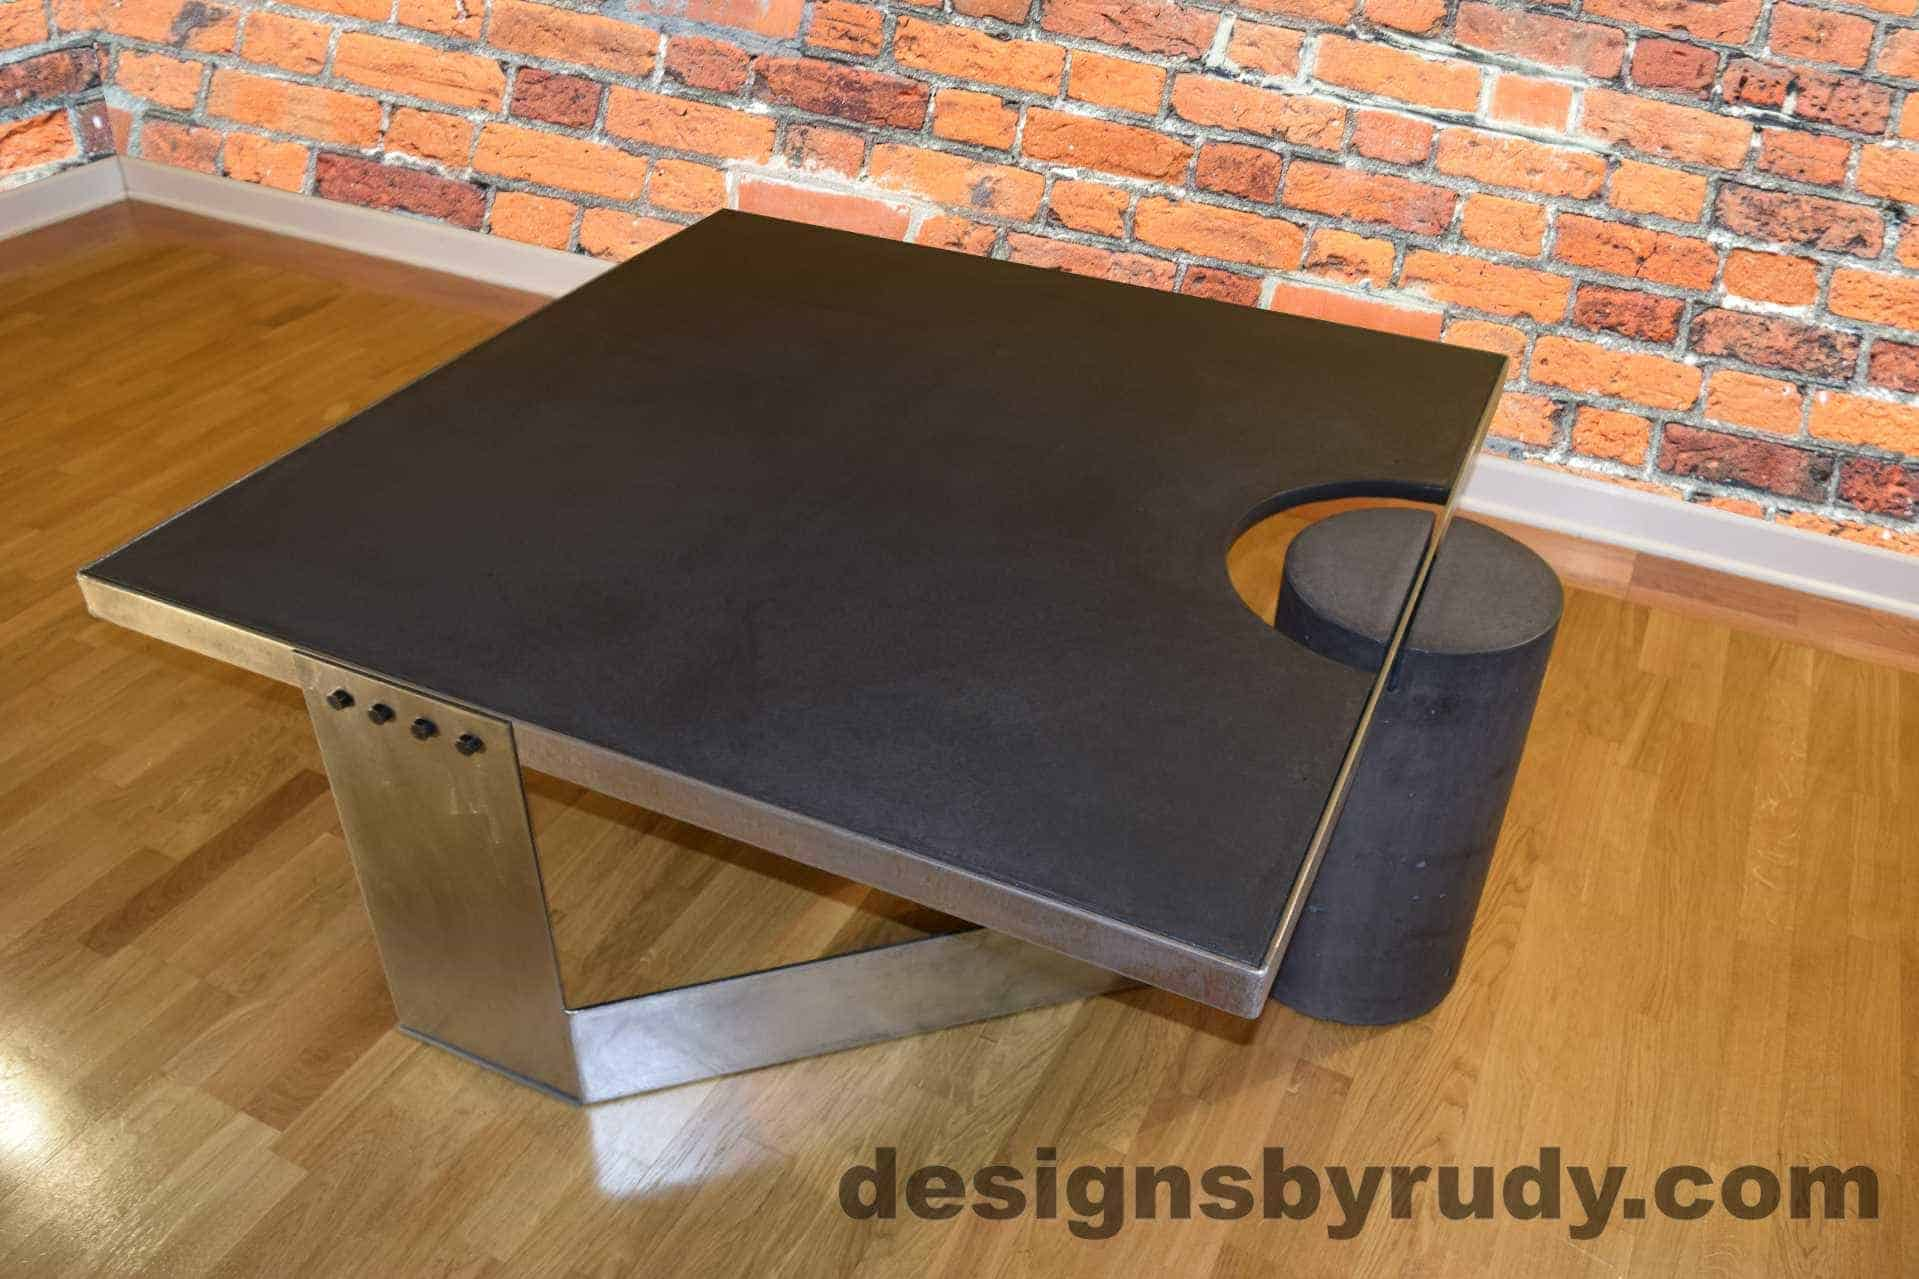 Black Concrete Coffee Table, Polished Steel Frame, top angle view, with flash Designs by Rudy